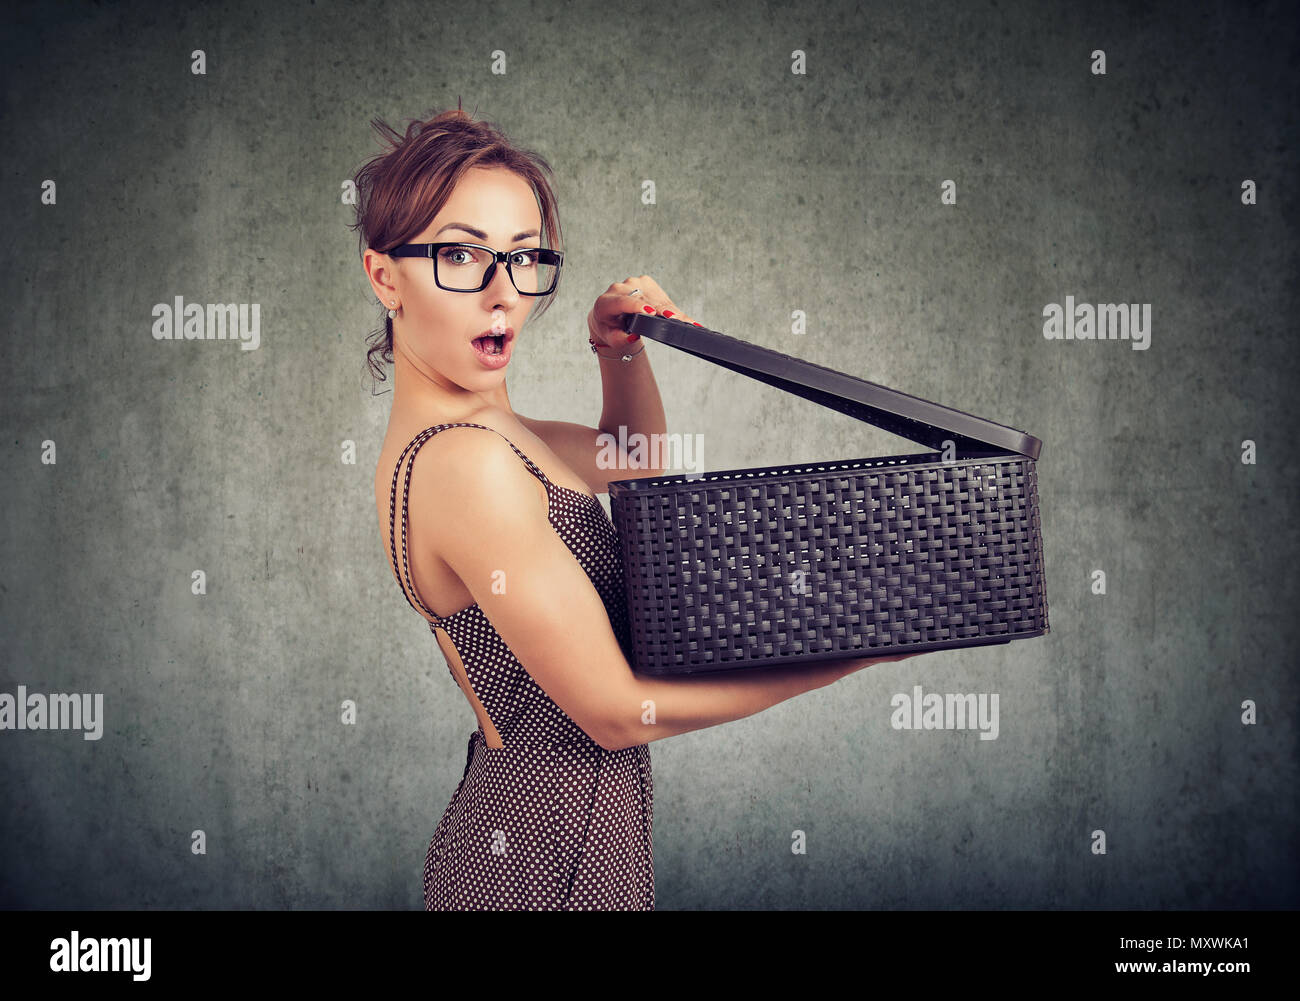 Young amazed woman opening box and looking shocked with mysterious gift inside looking at camera - Stock Image